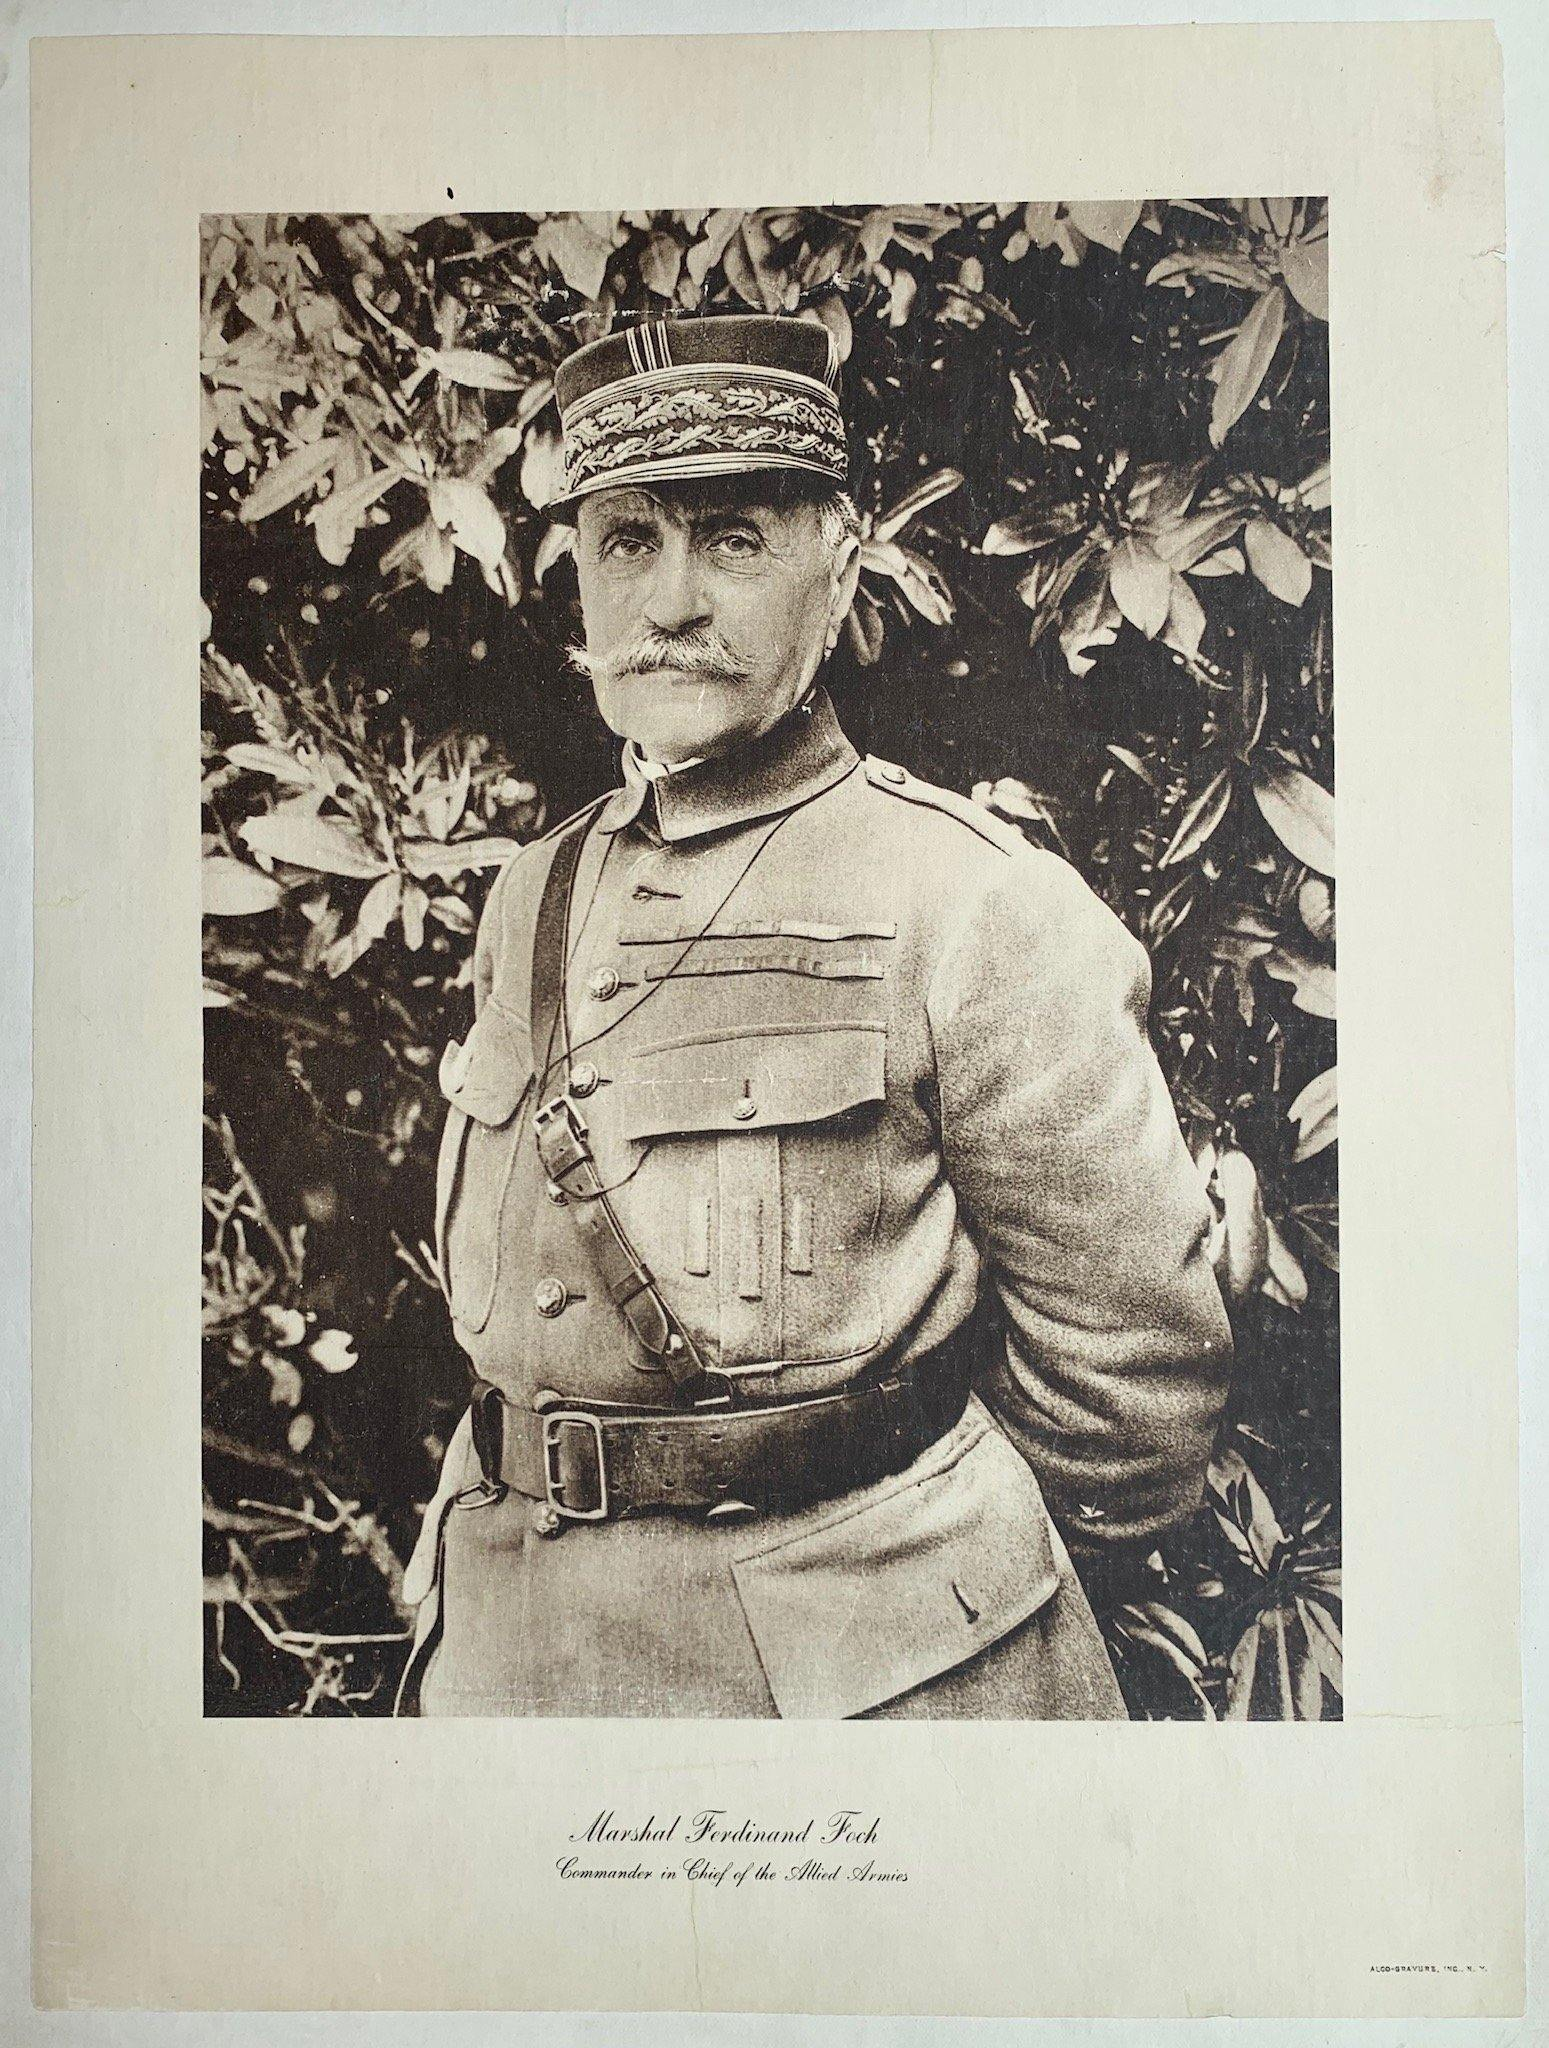 Marshal Ferdinand Foch, Commander in Chief of the Allied Armies